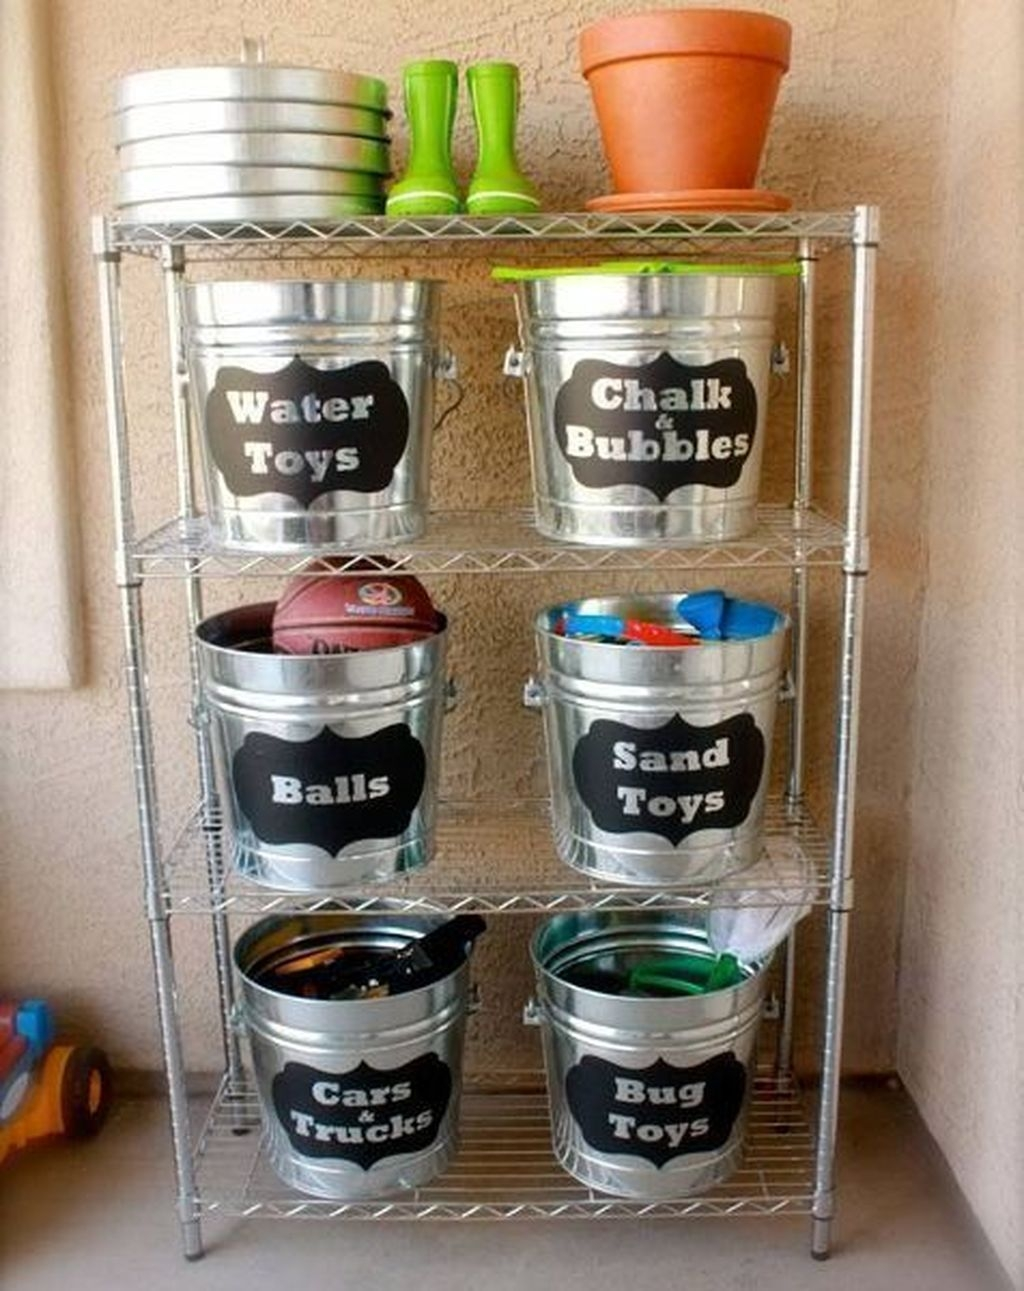 Luxury Toys Storage Organization Ideas12